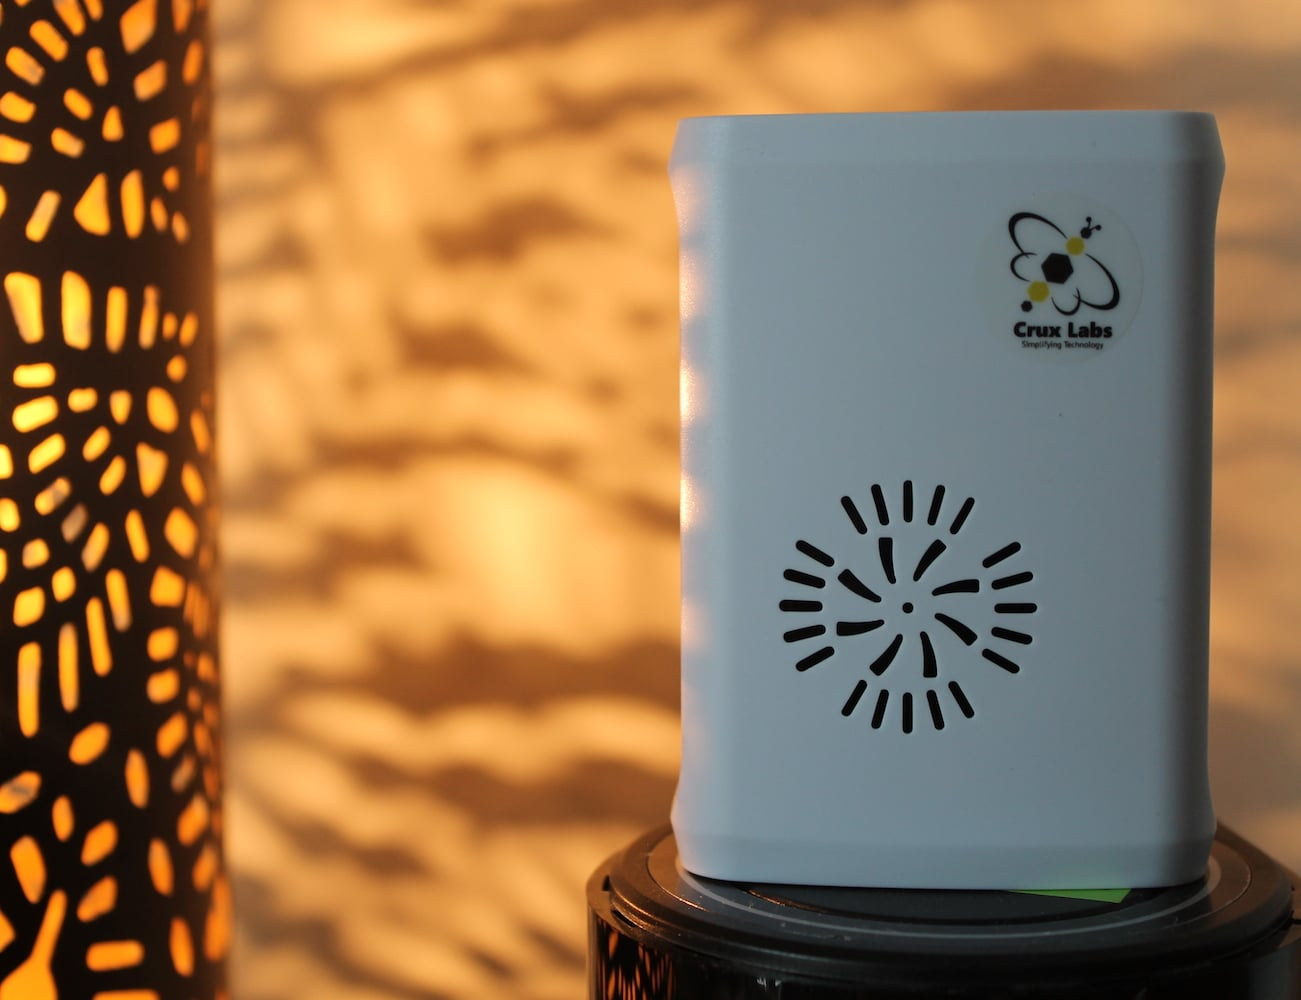 Crux LX All-in-One Wireless Router